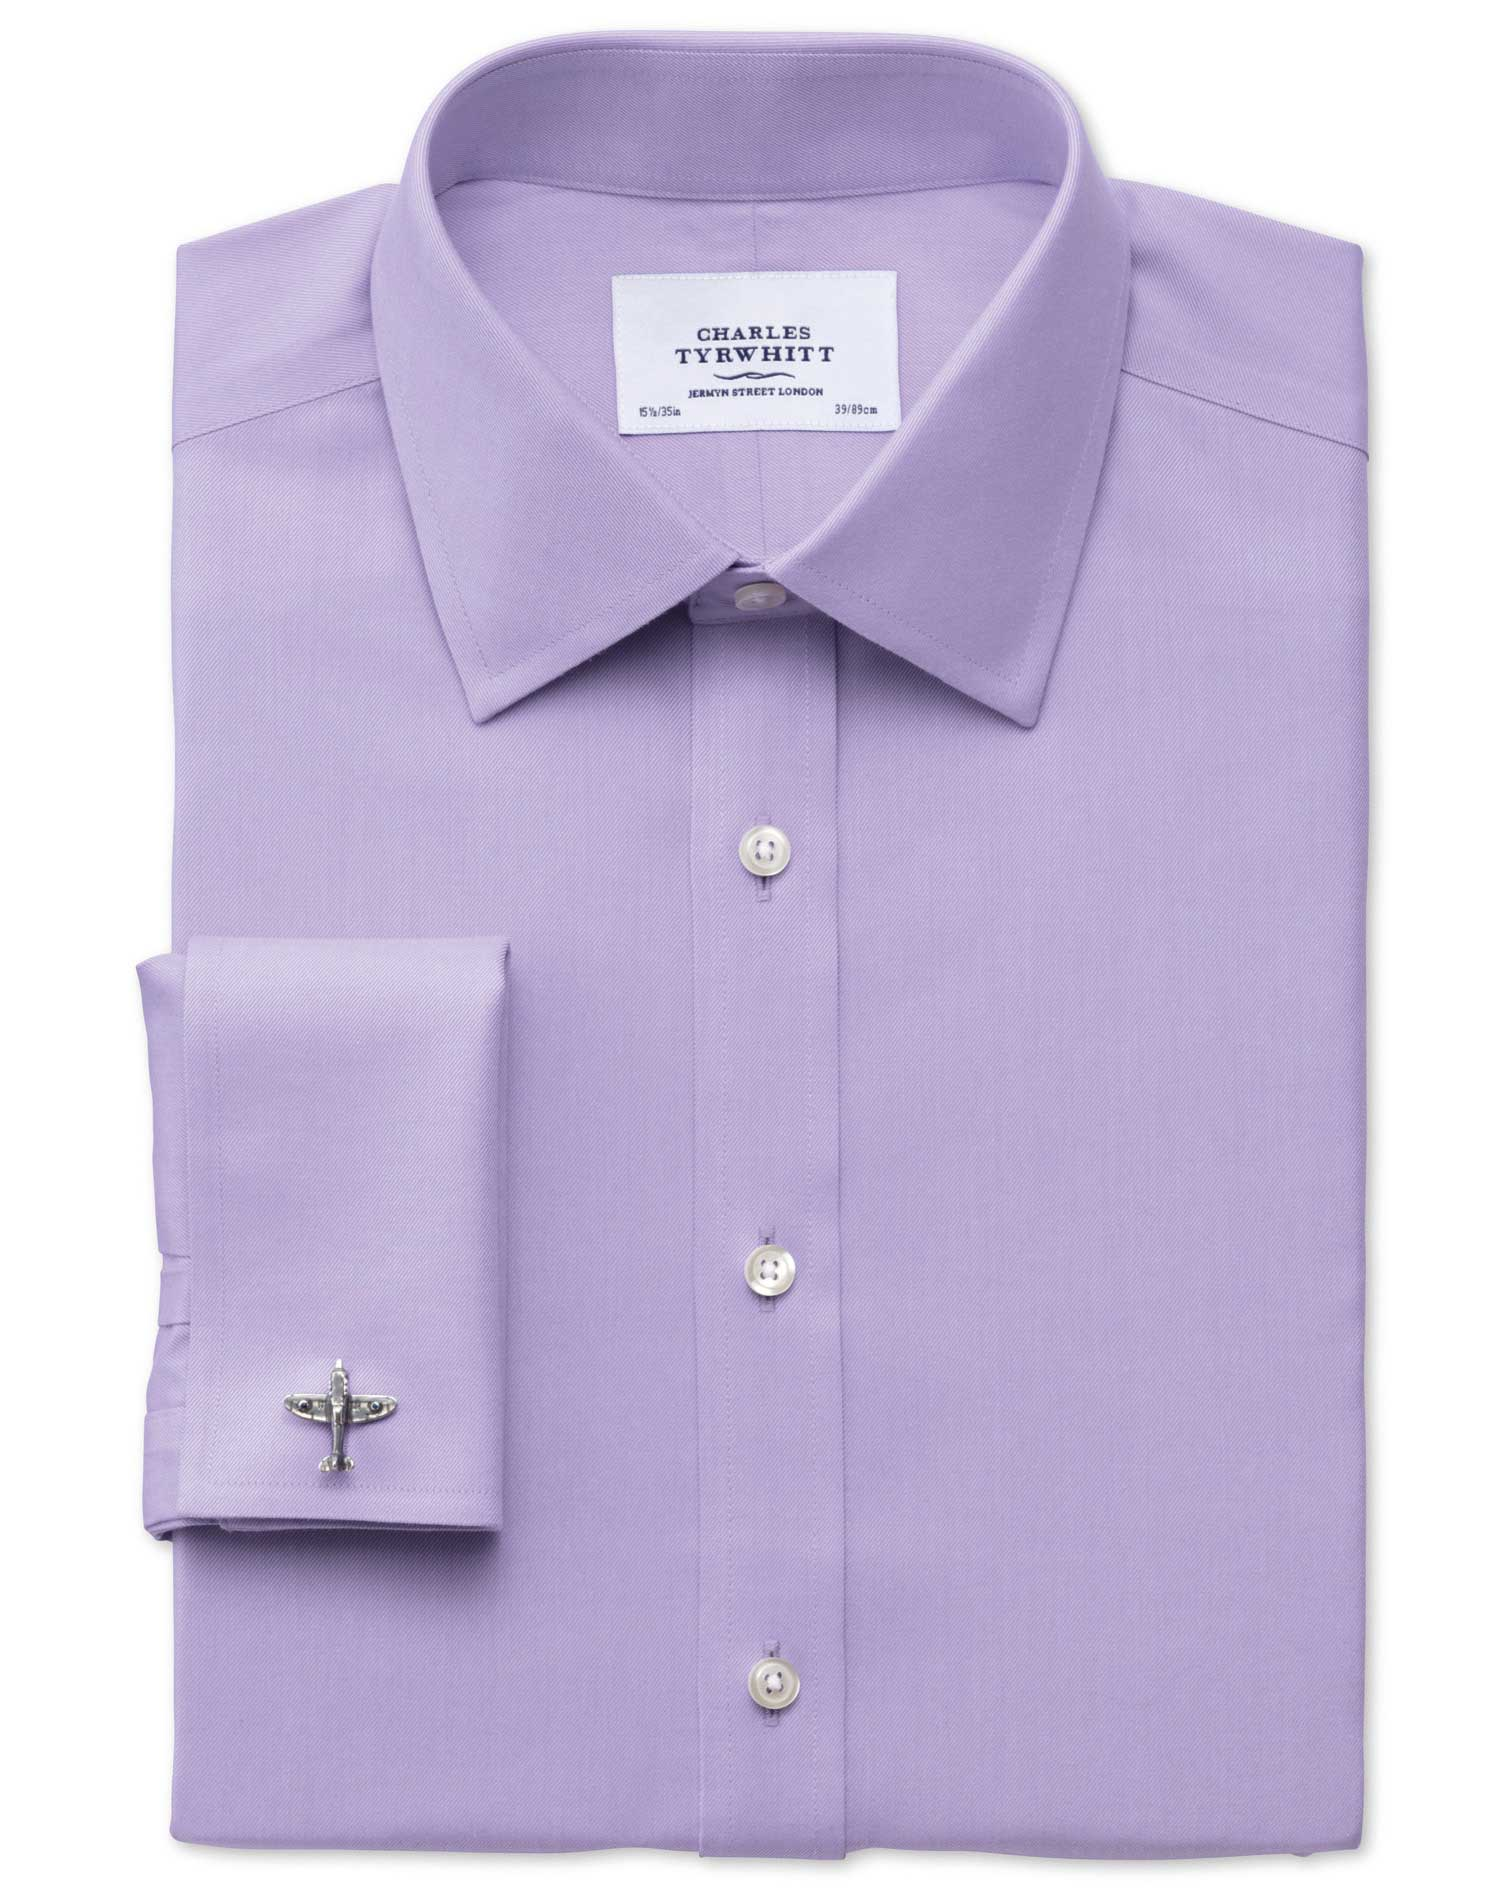 Classic Fit Non-Iron Twill Lilac Cotton Formal Shirt Single Cuff Size 17.5/34 by Charles Tyrwhitt